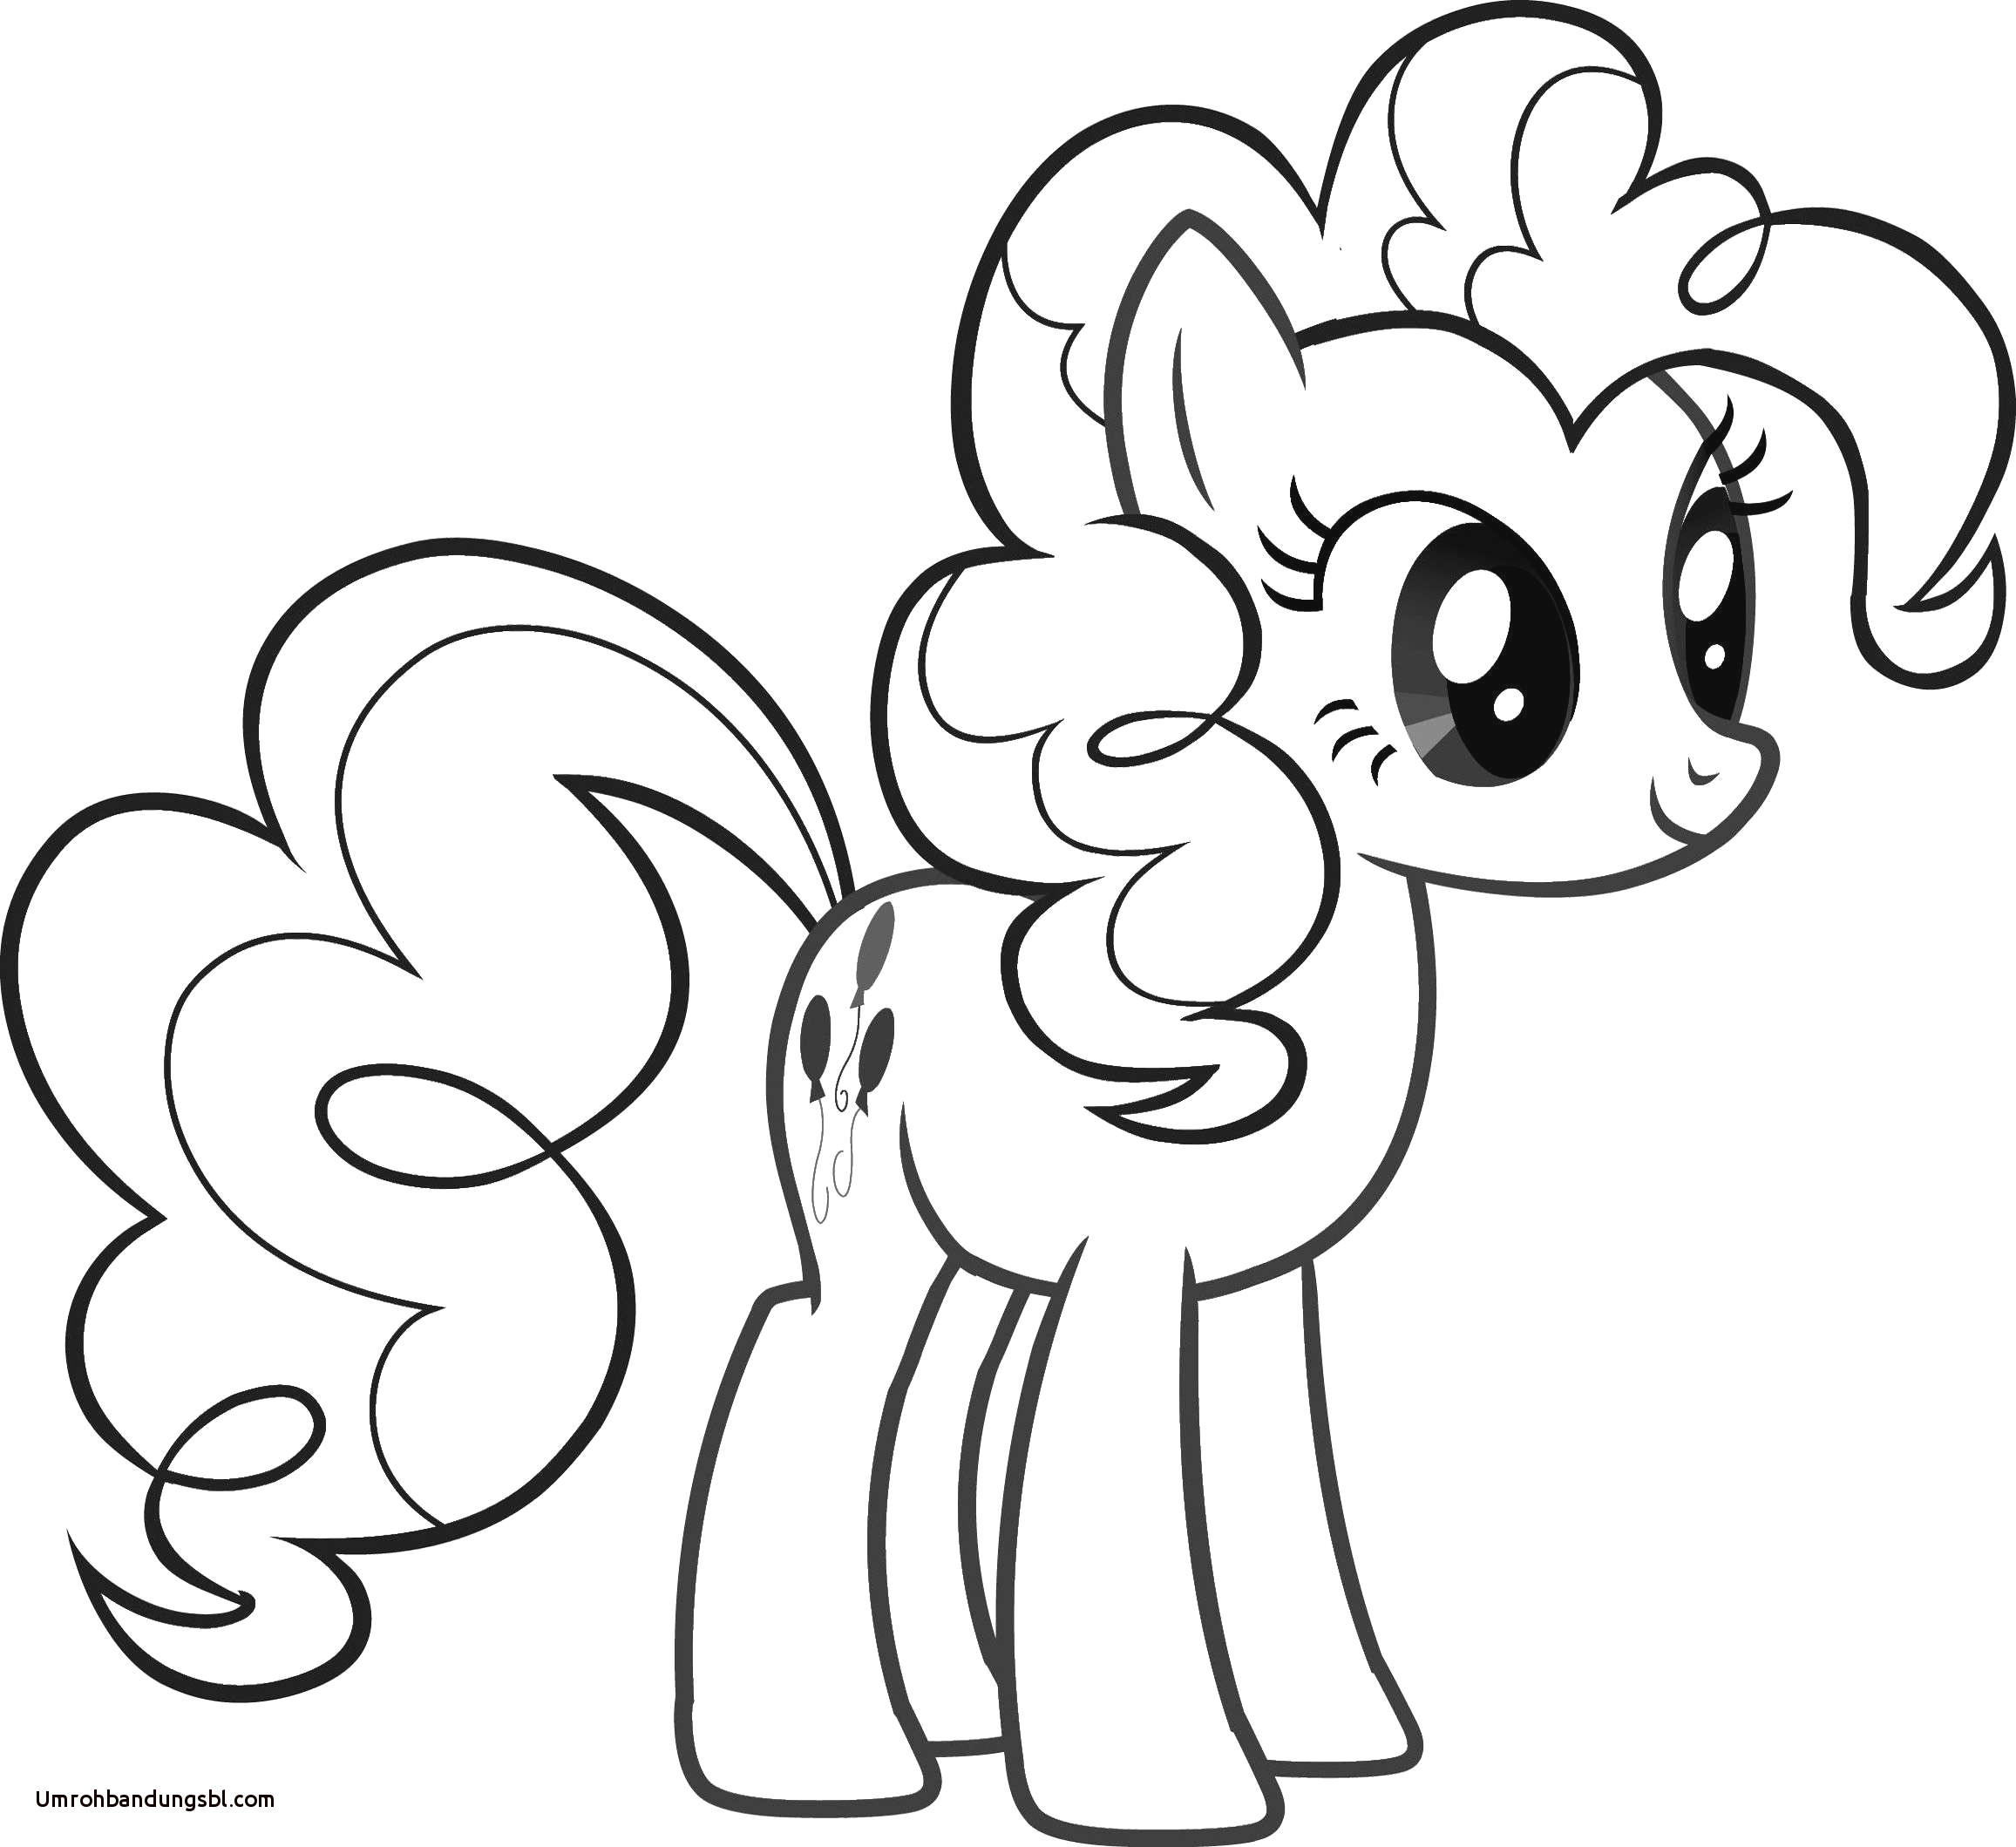 My Little Pony Resume - Pinkie Pie Coloring Pages to Print Best My Little Pony Resume